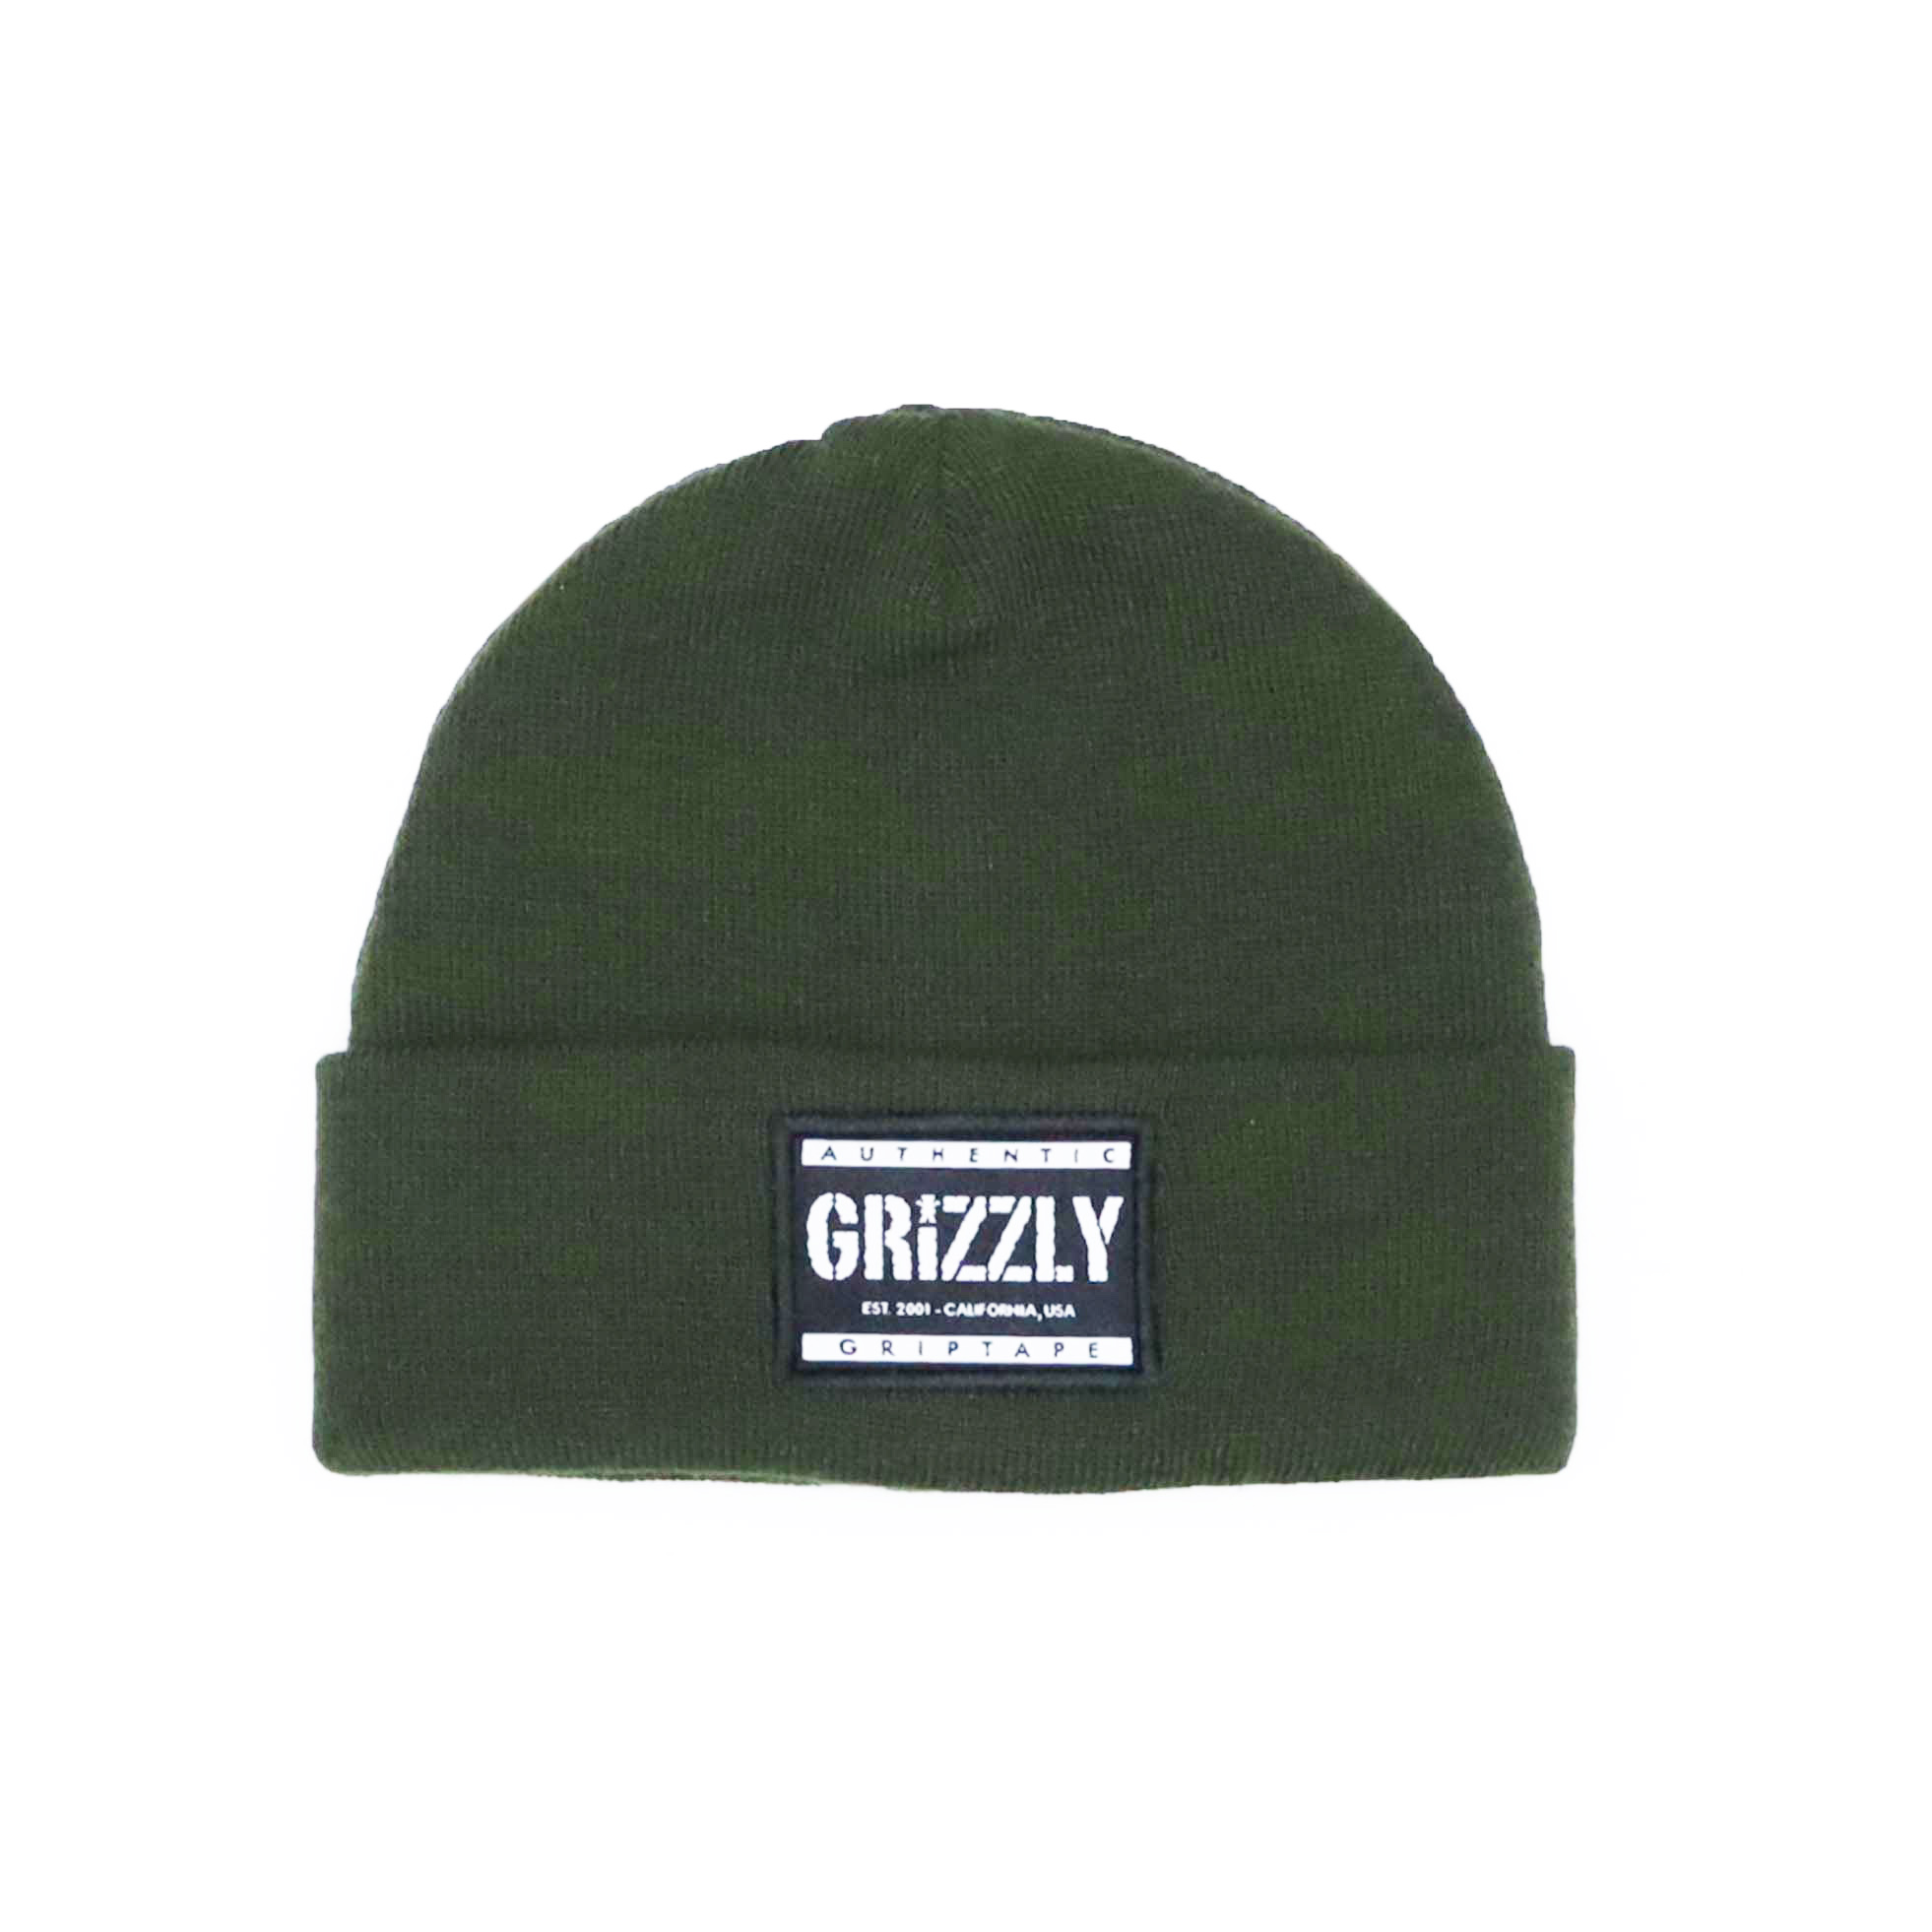 Touca Grizzly Labeled - Verde Militar